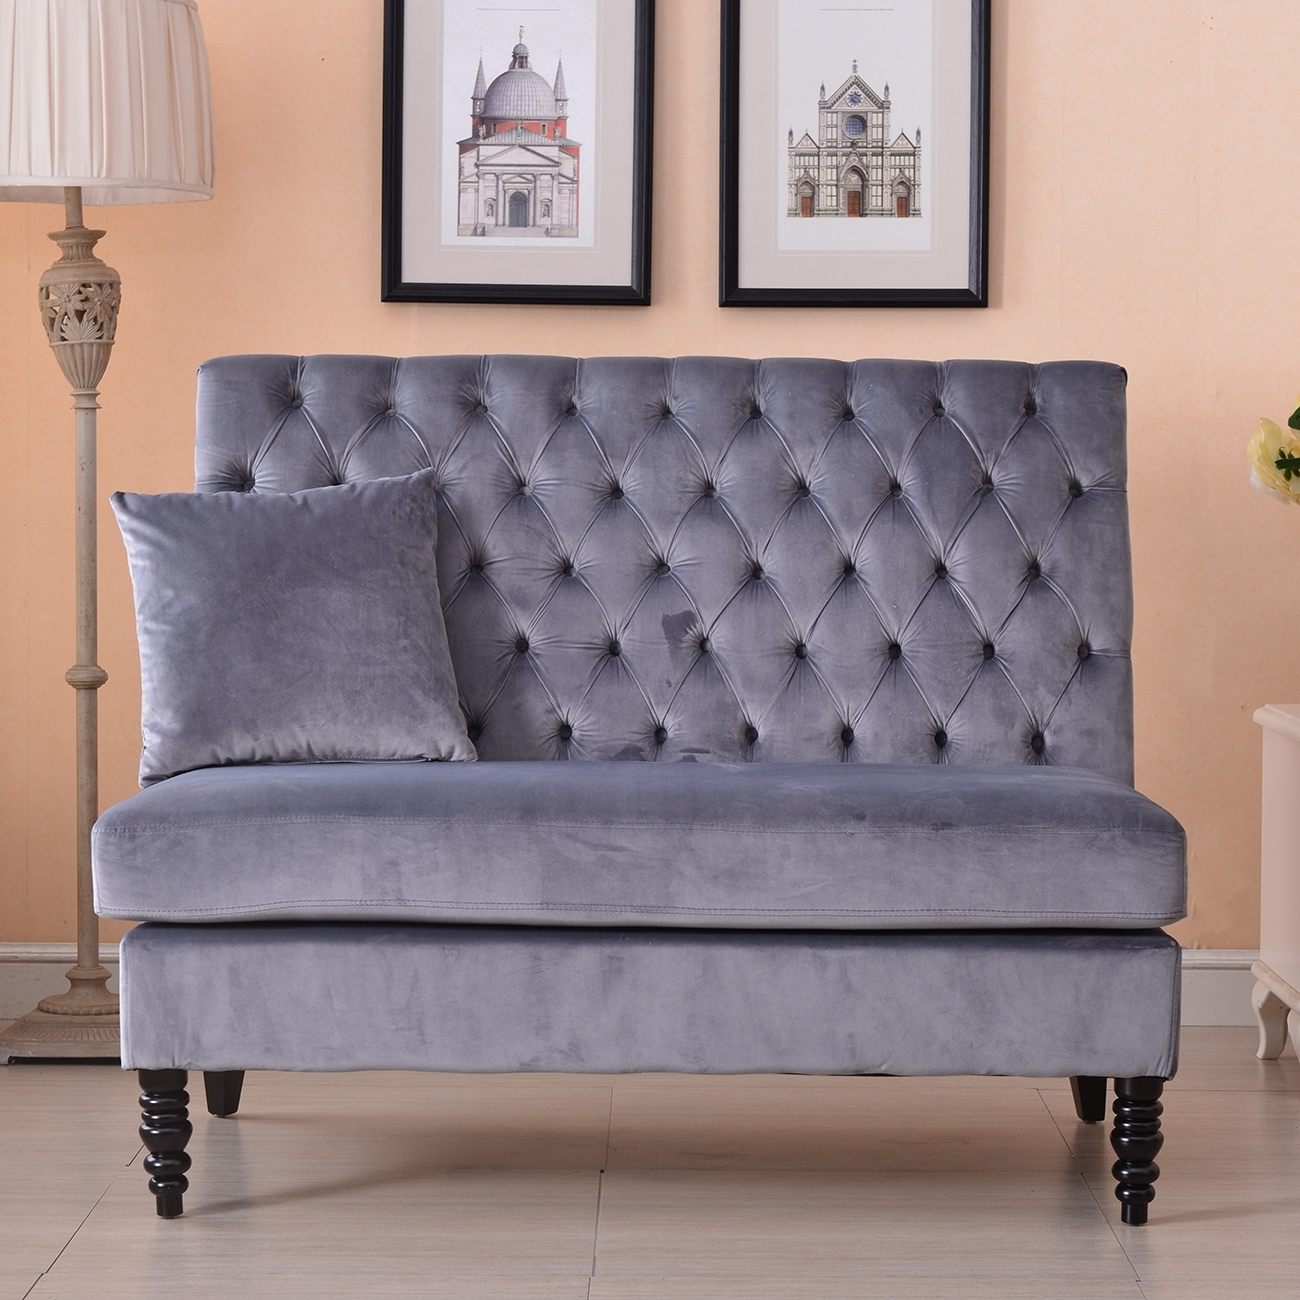 2019 Sofas With High Backs For Buying Guide High Back Sofa (View 4 of 20)